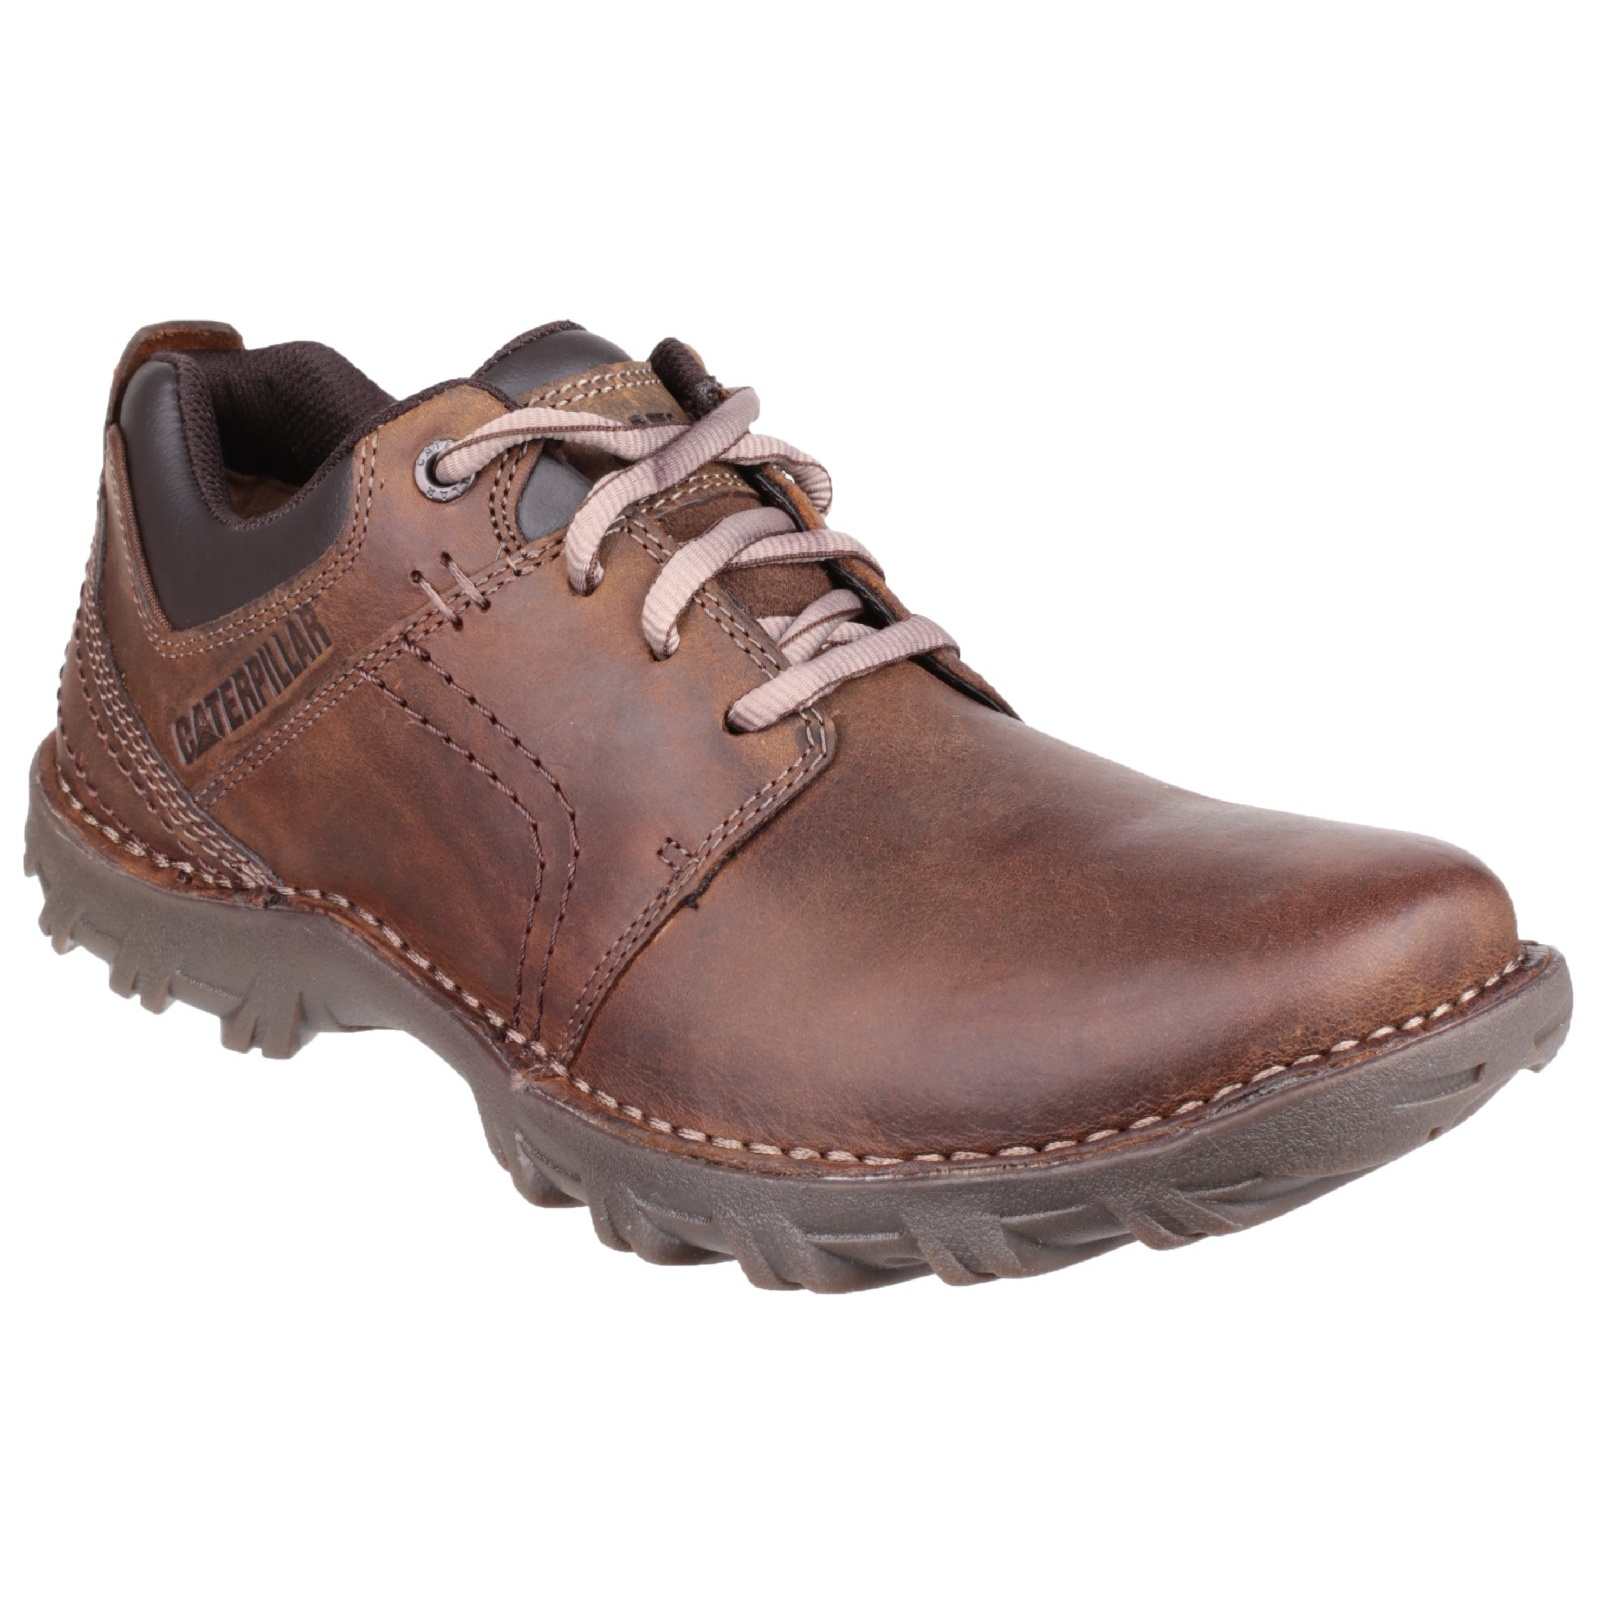 Caterpillar shoes are the perfect work shoes for any job. With steel toe, ASTM, ANSI, and electrical hazard ratings these boots and shoes are made for work. Whether your work shoes are for working in factory, the docks, or a construction site CAT has got you covered.